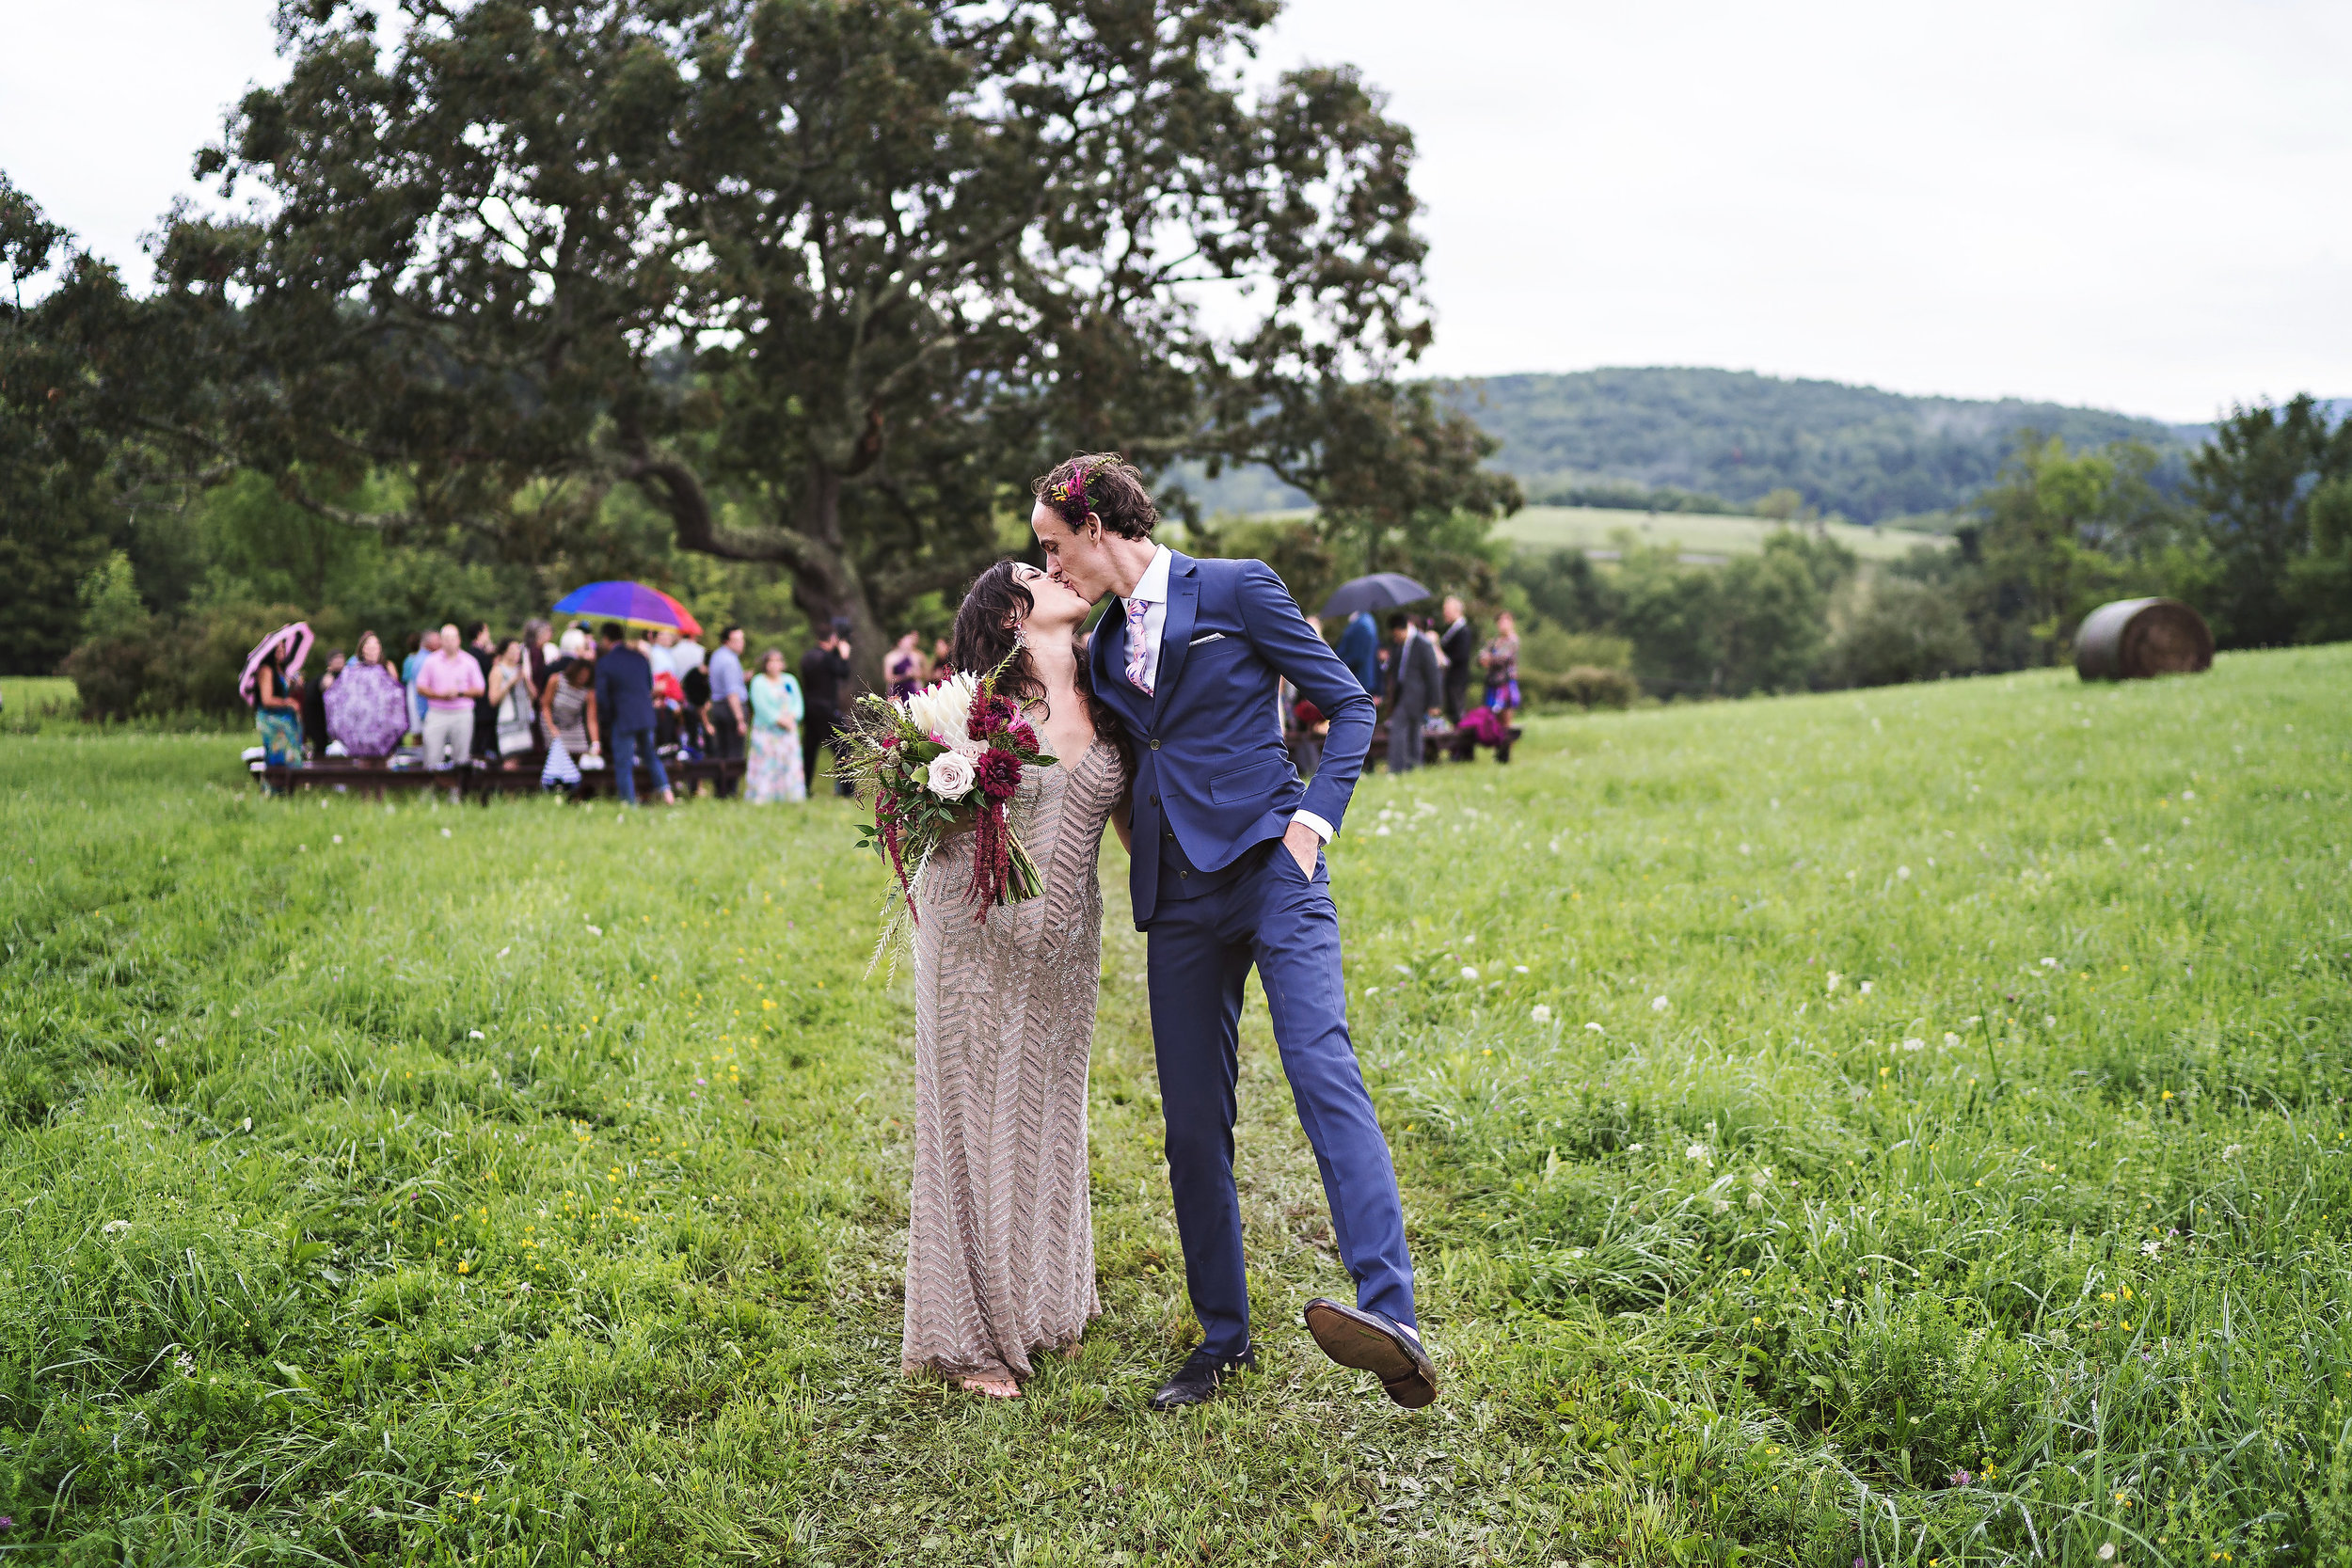 upstate-ny-wedding-jove-meyer-events-inbal-sivan-029.jpg